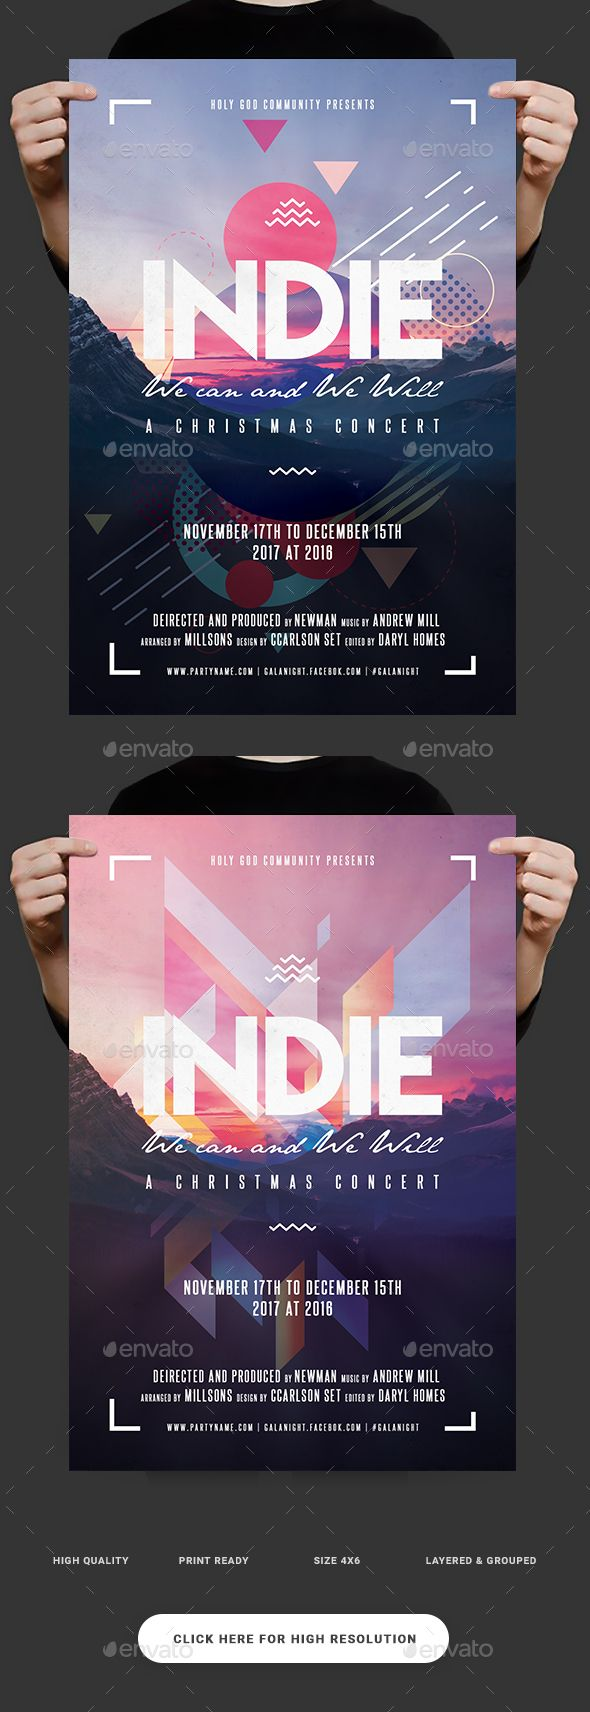 Indie Morning Flyer — Photoshop PSD #sounds #print • Download ➝ graphicriv…